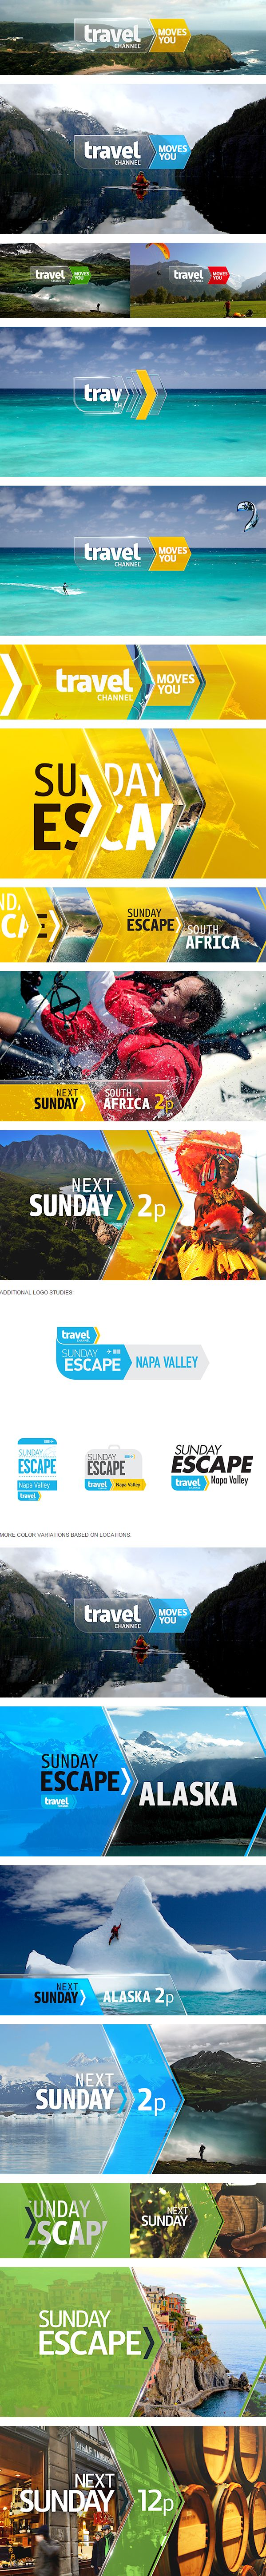 Travel Channel / Sunday Escape -- www.behance.net/gallery/18791401/Travel-Channel-Sunday-Escape